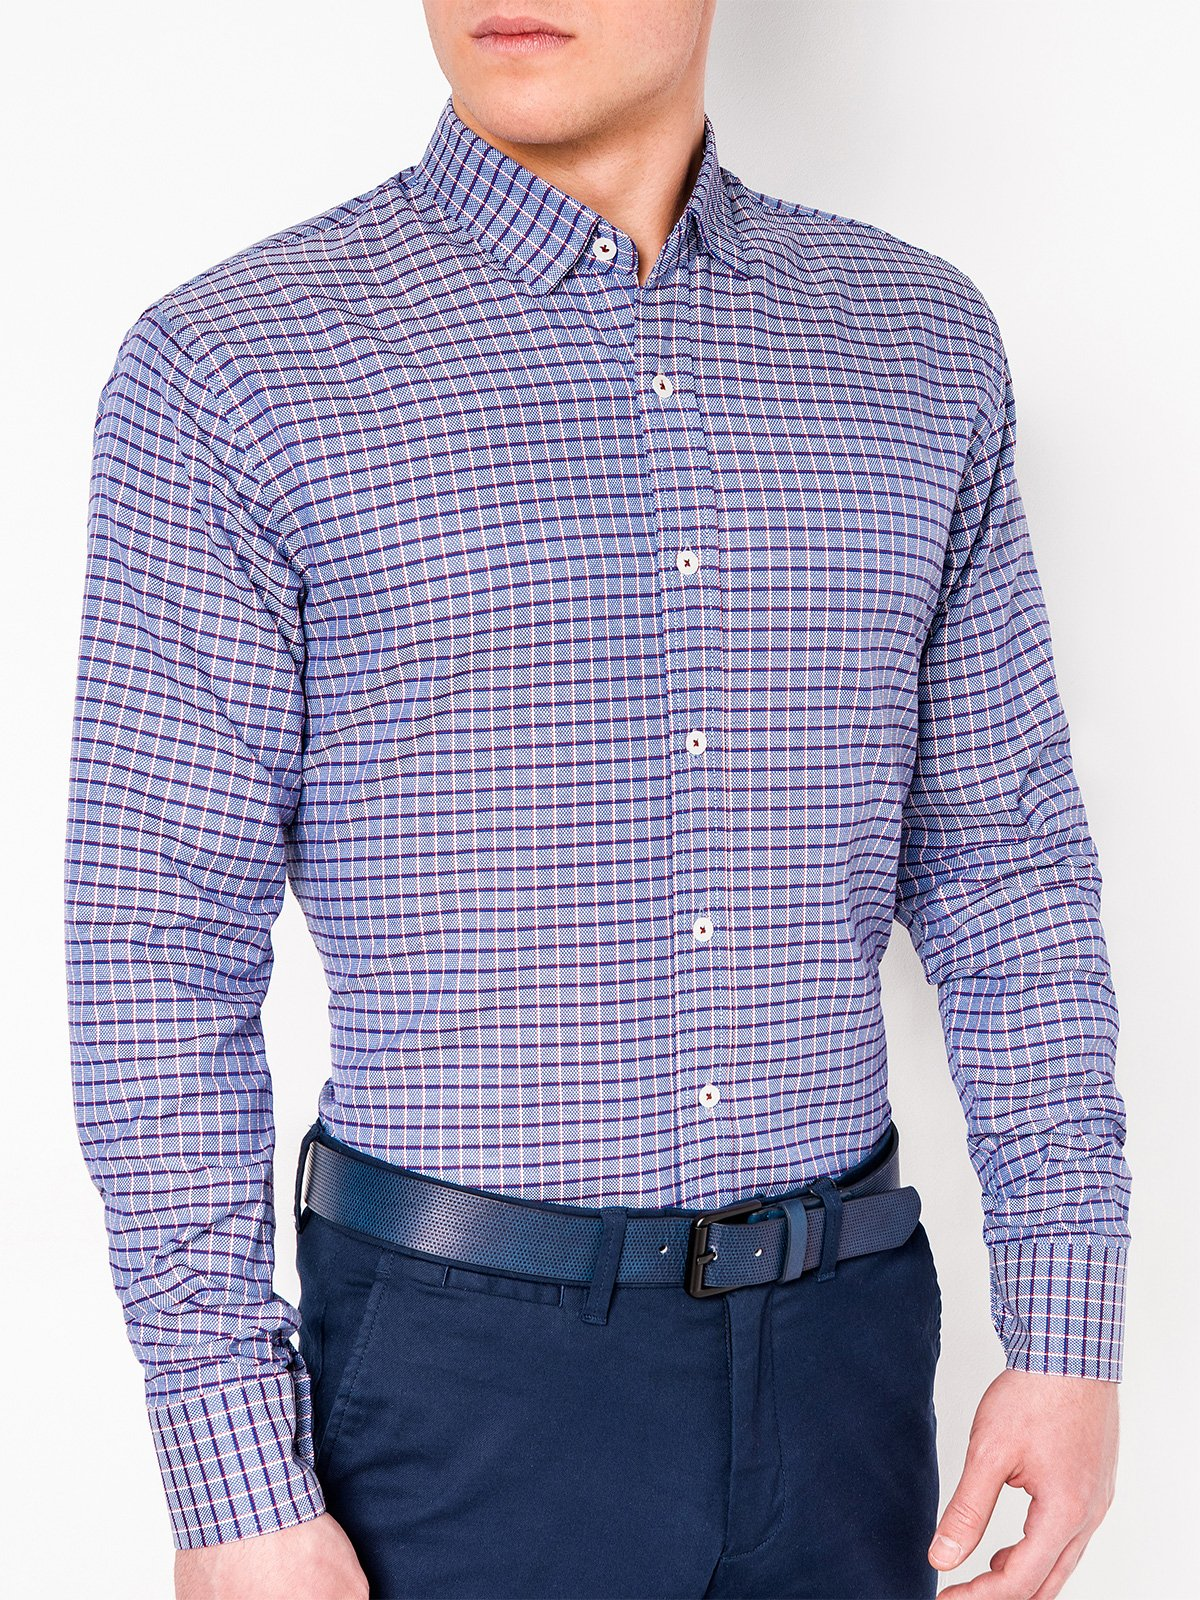 Ombre Clothing Men's check shirt with long sleeves K439